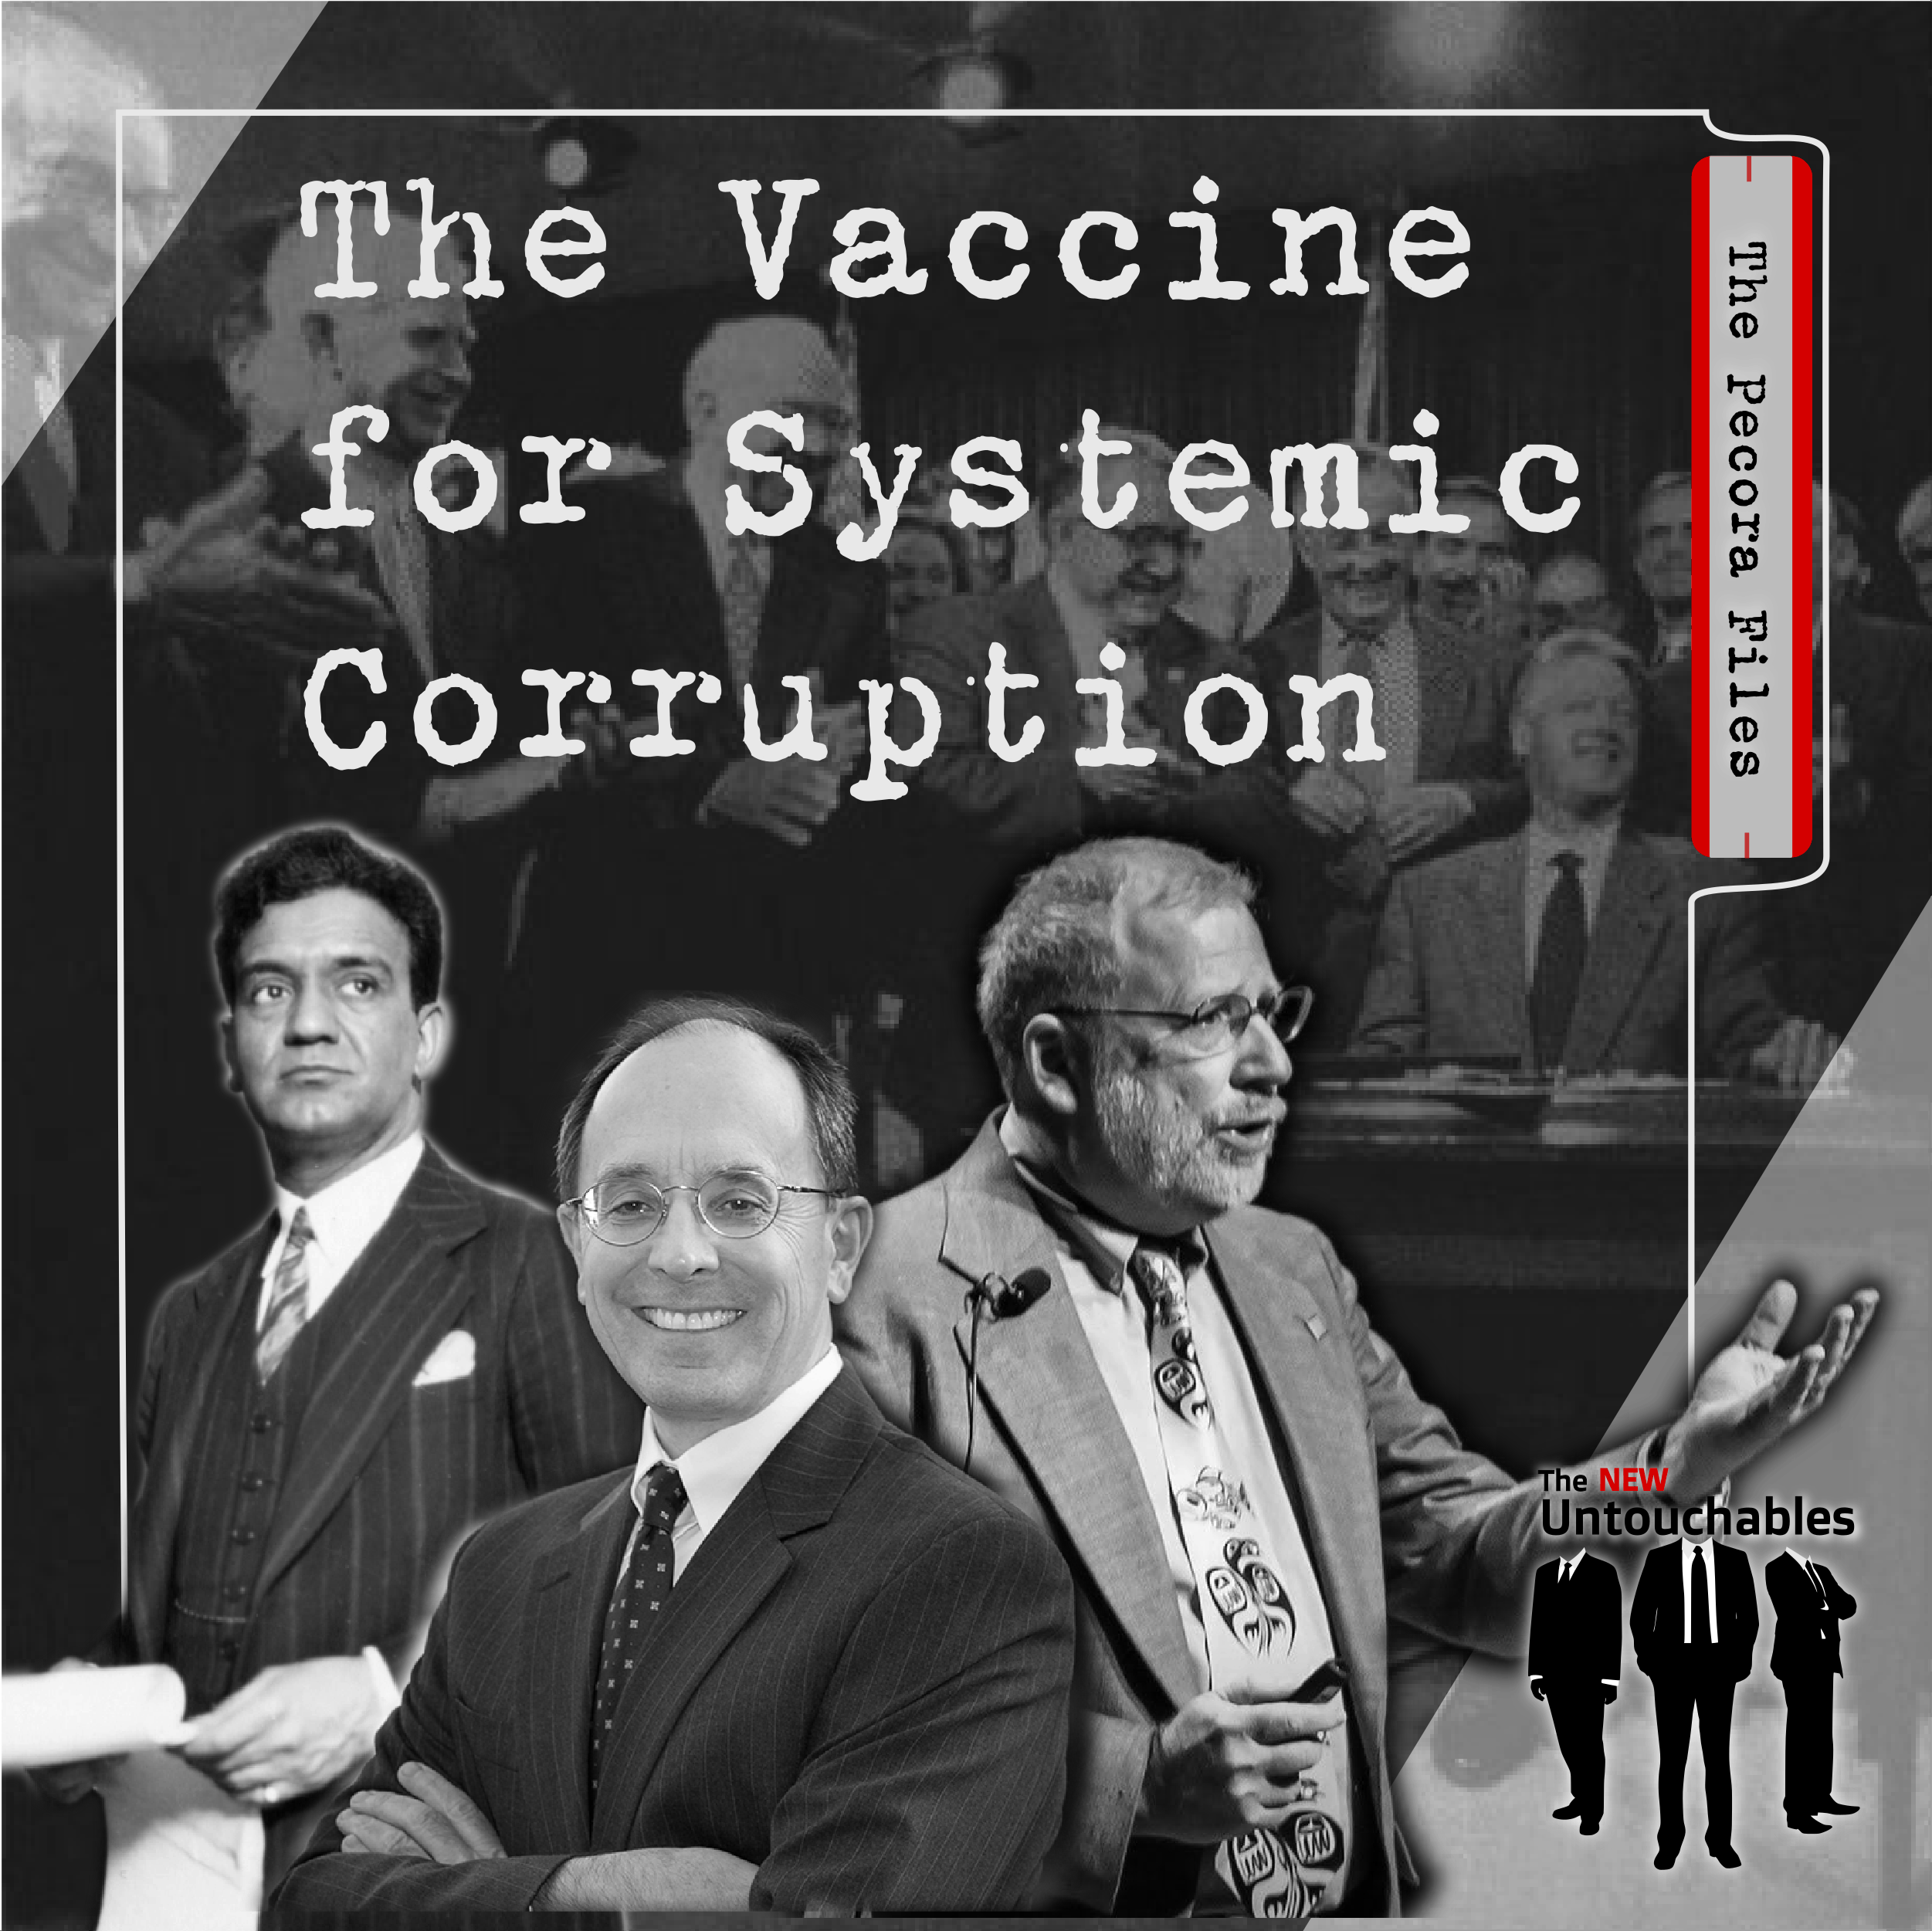 Episode 1 – The Vaccine for Systemic Corruption